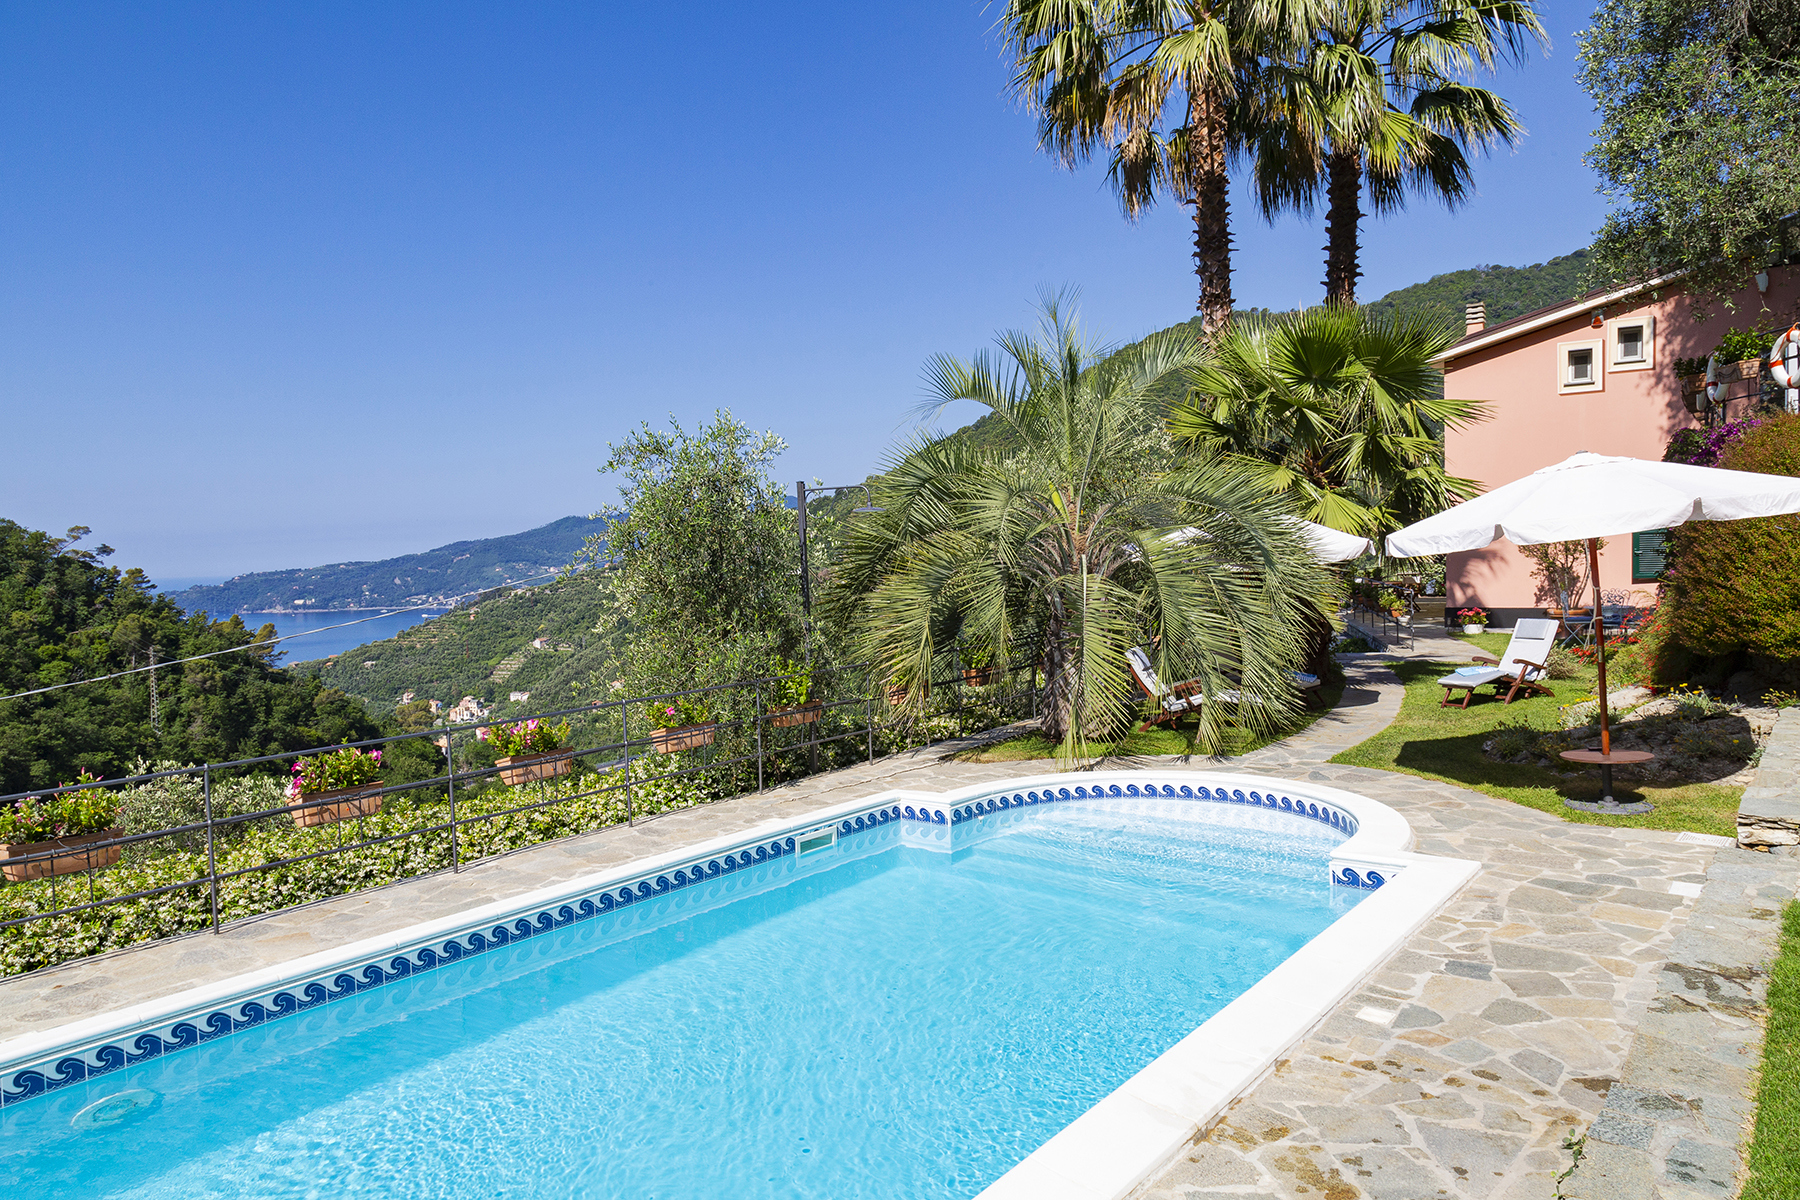 Single Family Homes for Sale at Detached house in panoramic position with a beautiful sea view Zoagli, Genoa Italy